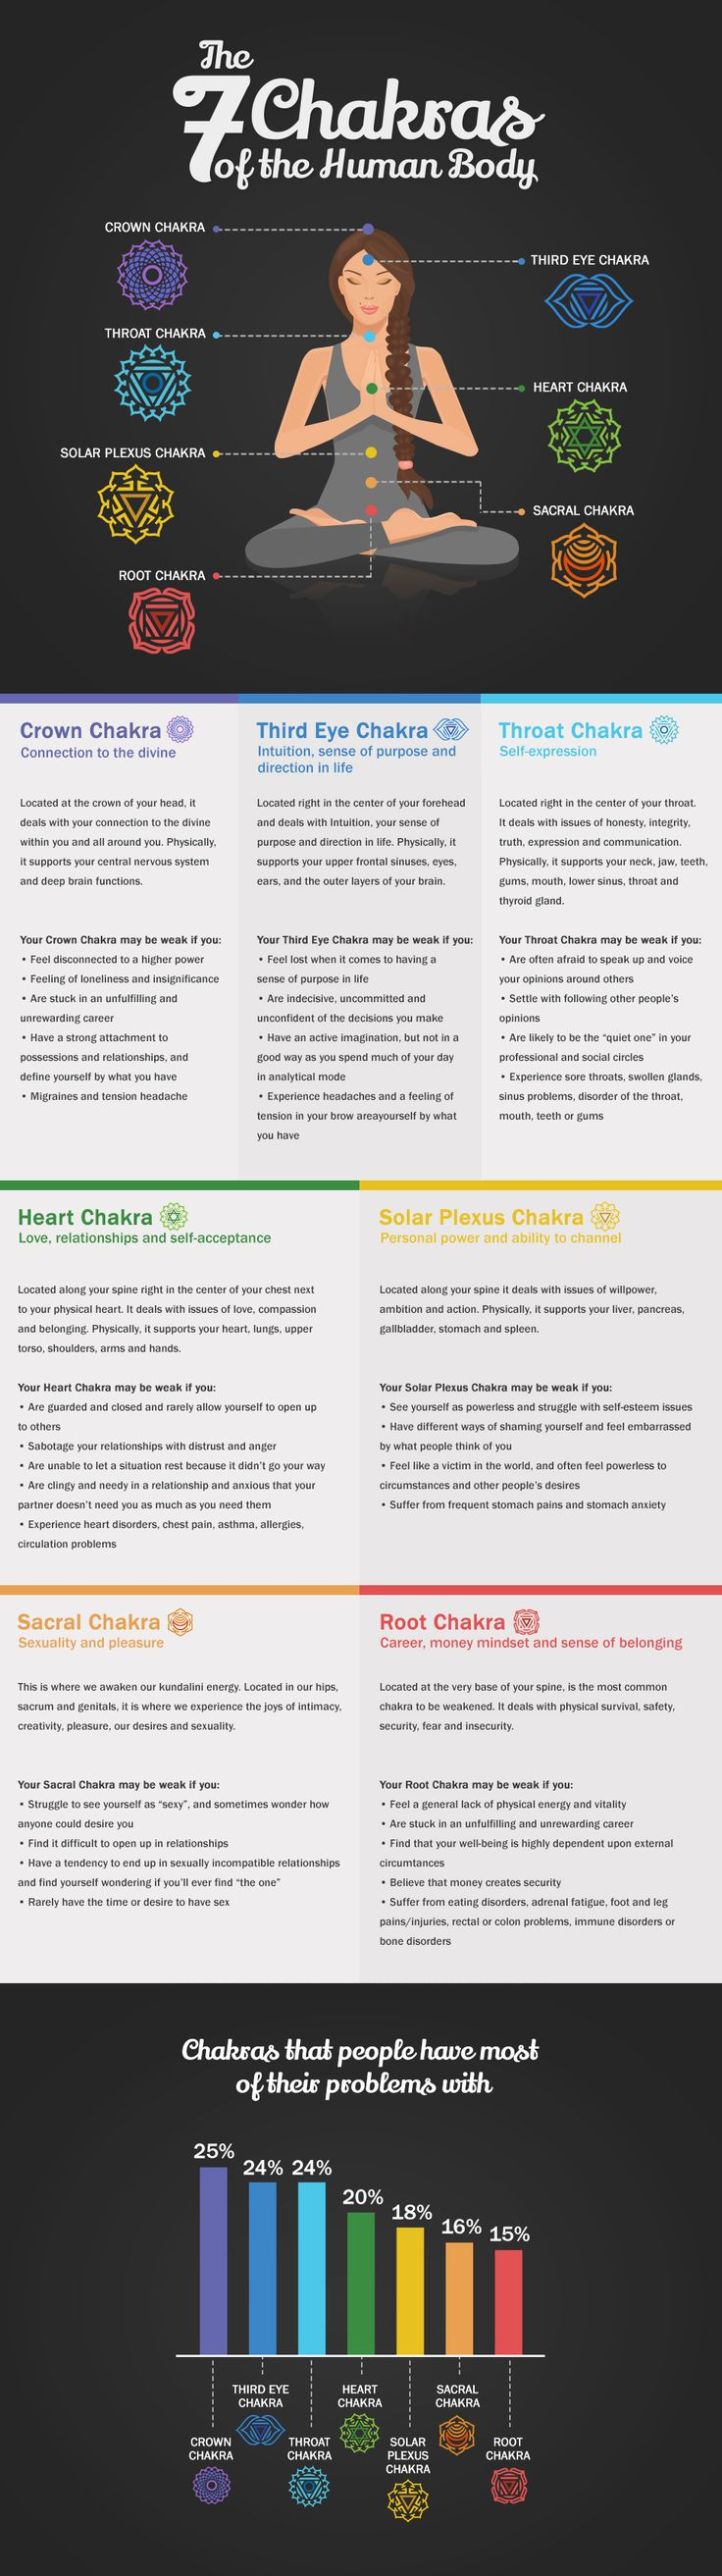 The Truth About Your Chakras: Which One Of Them Could Be Sabotaging Your Life?